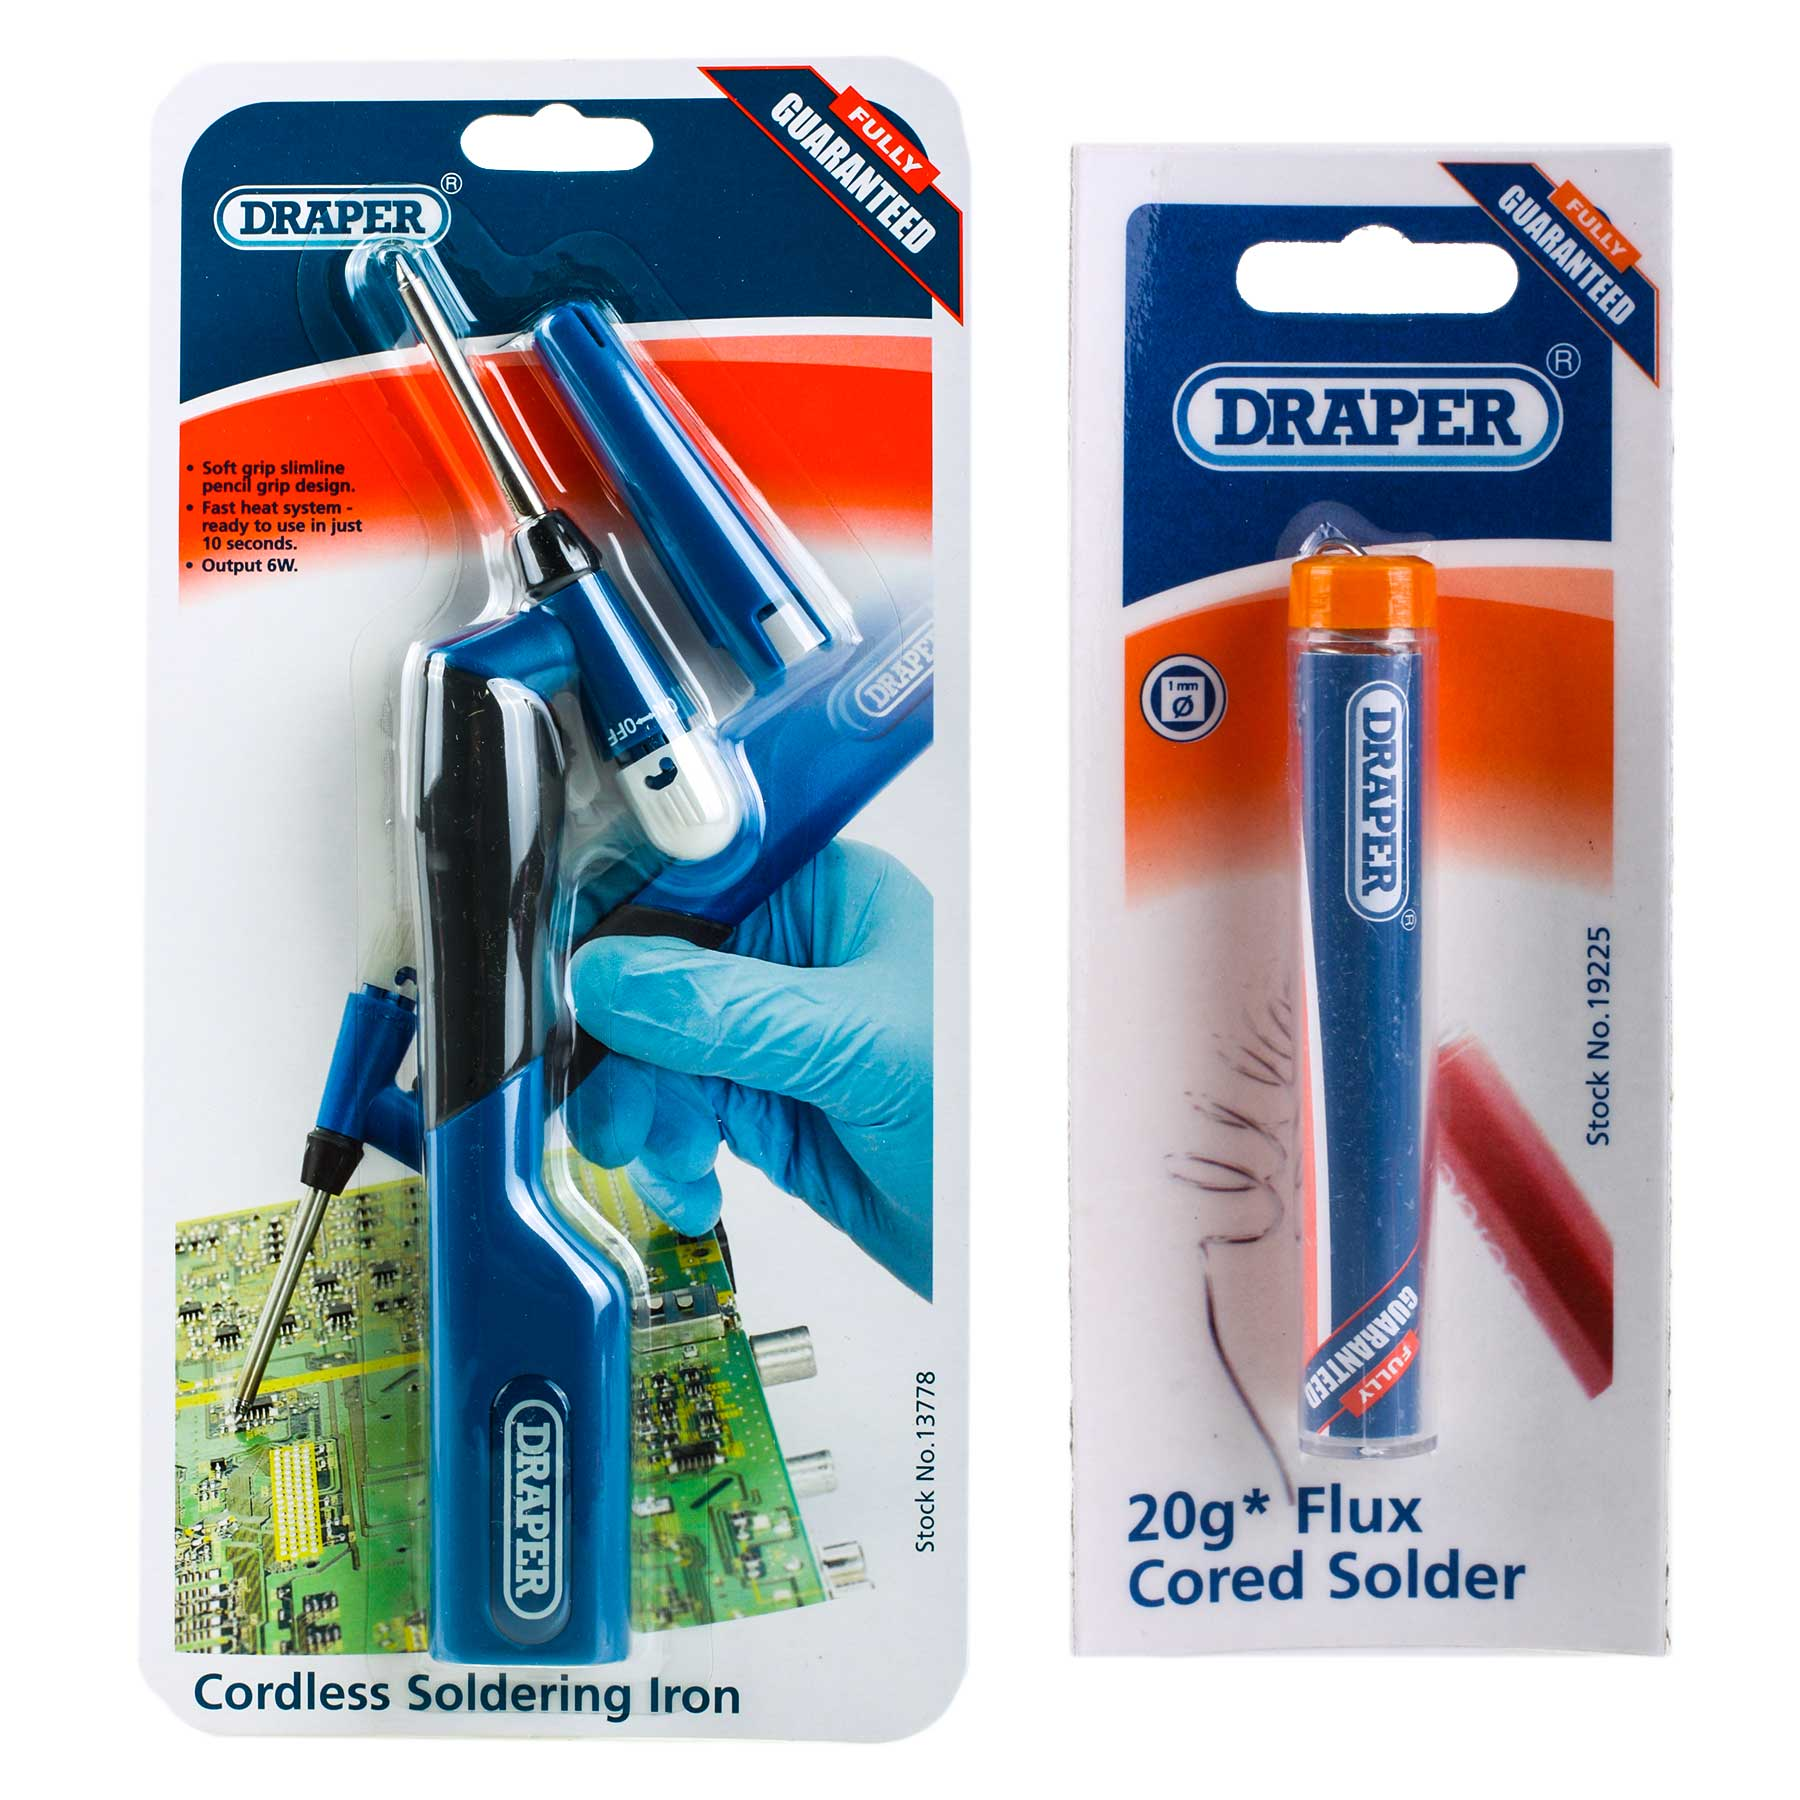 Draper 13778 Csi-1 6W Cordless Battery Powered Soldering Iron with ...